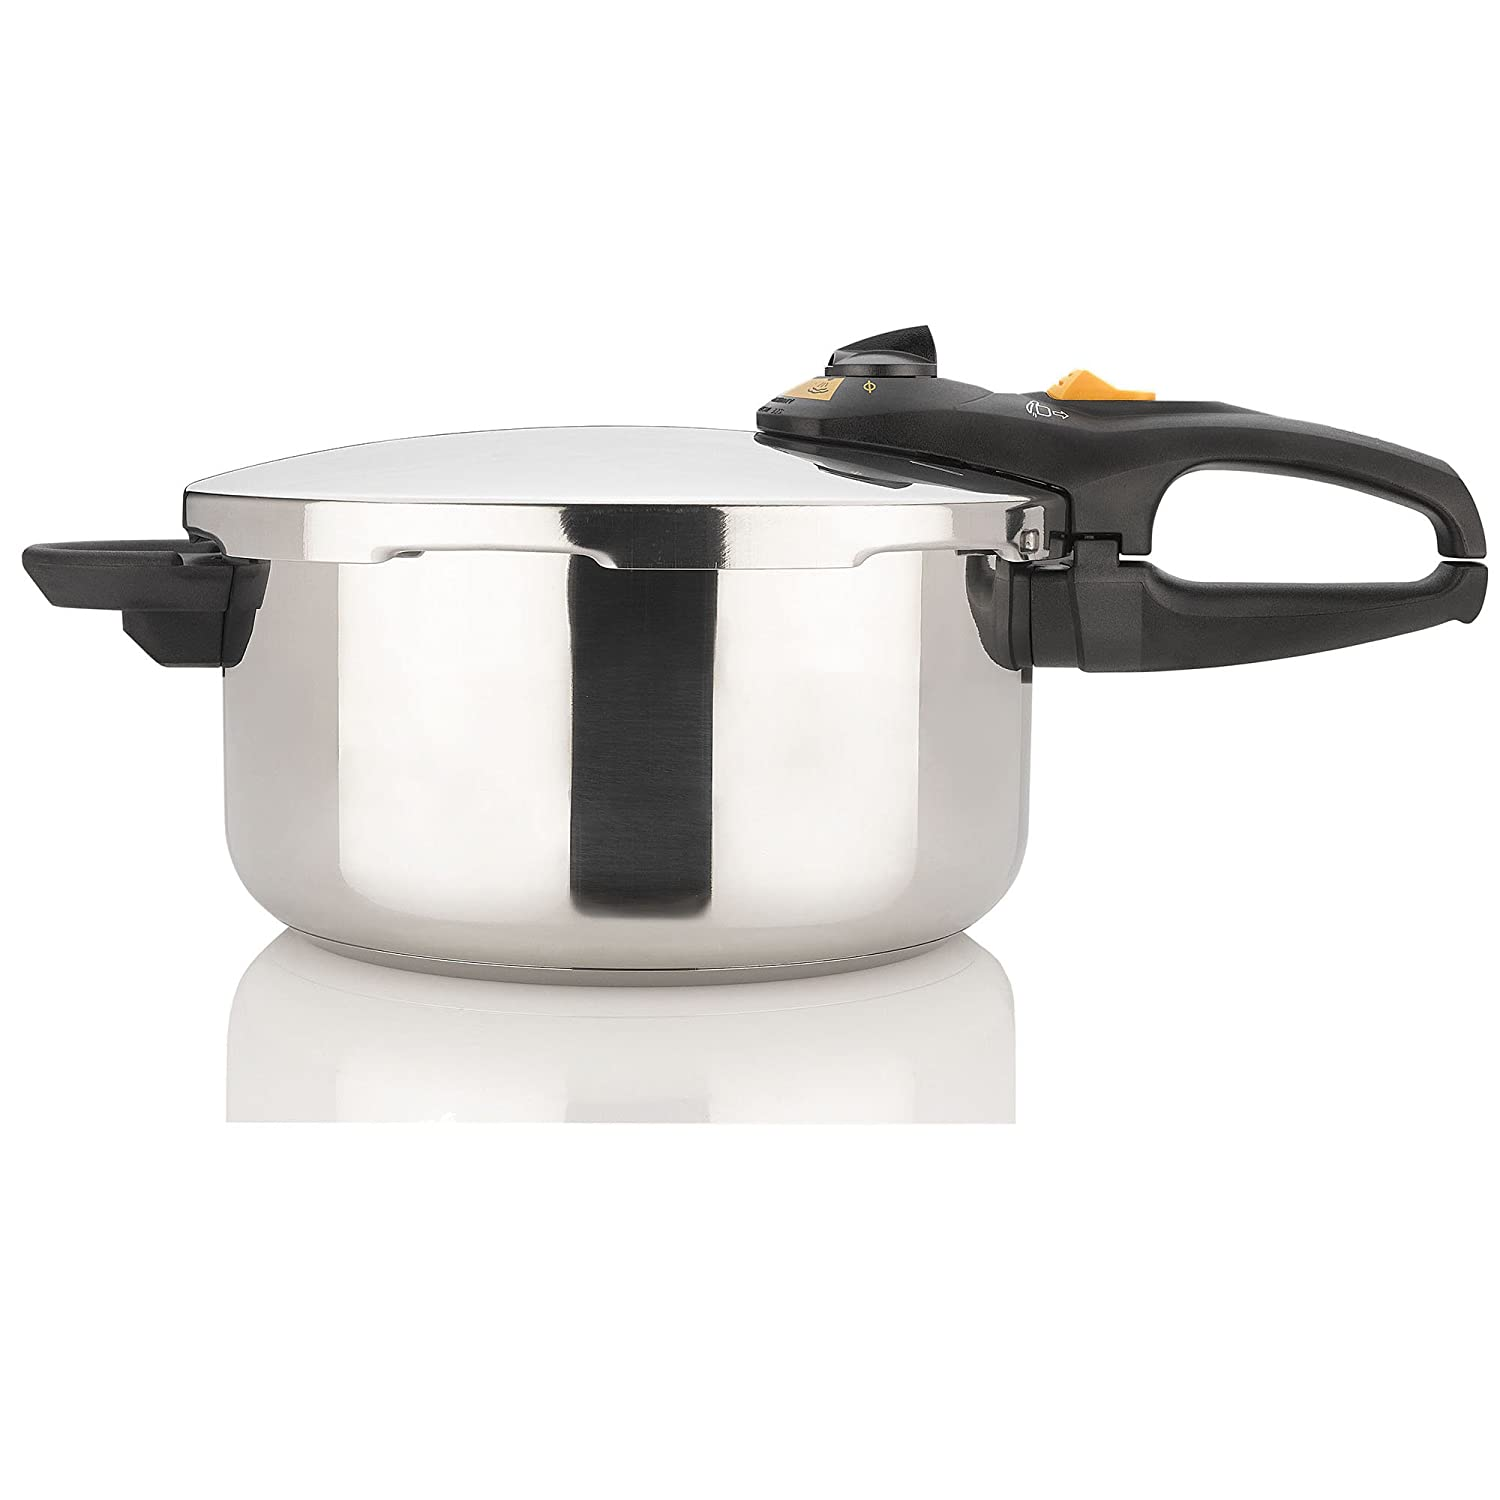 Fagor DUO 4 Quart - Multi-Setting Pressure Cooker and Canner with Accessories, Polished Stainless Steel - 918060242